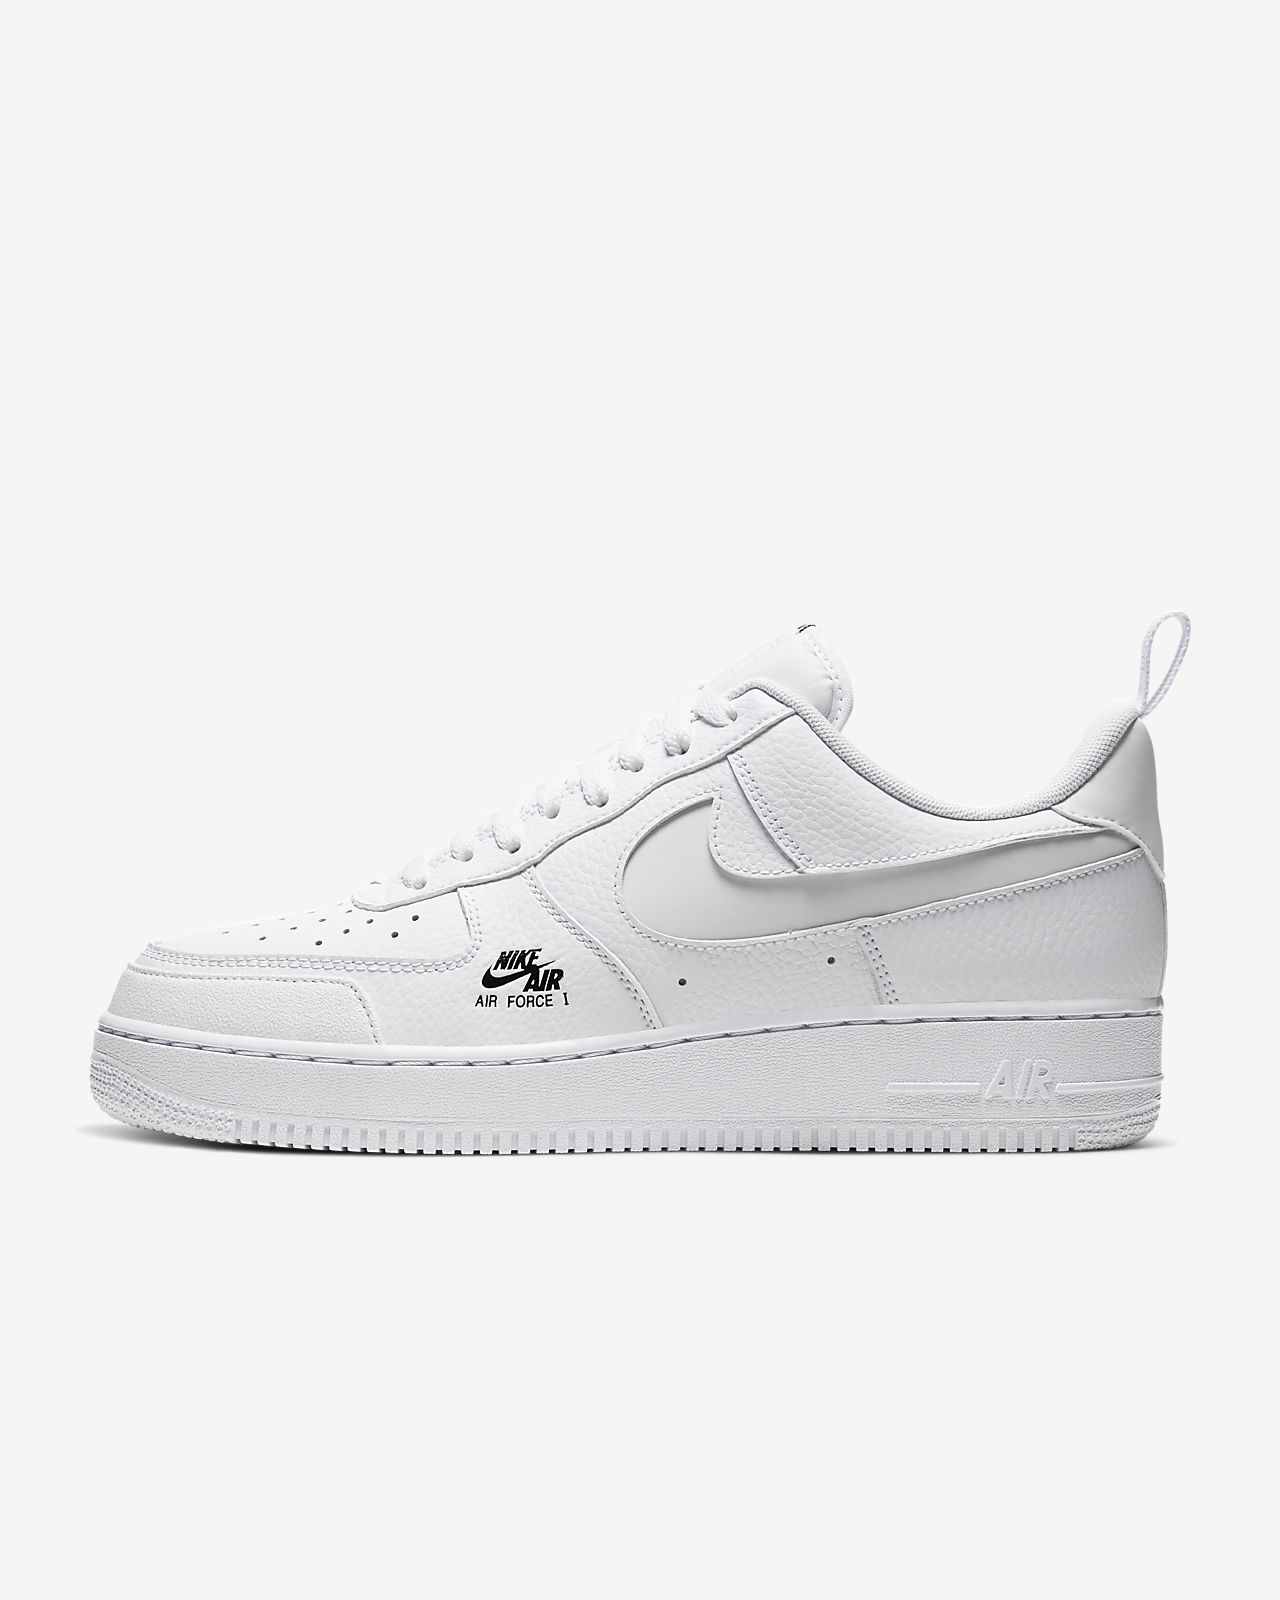 nike air force 1 discontinued twitter